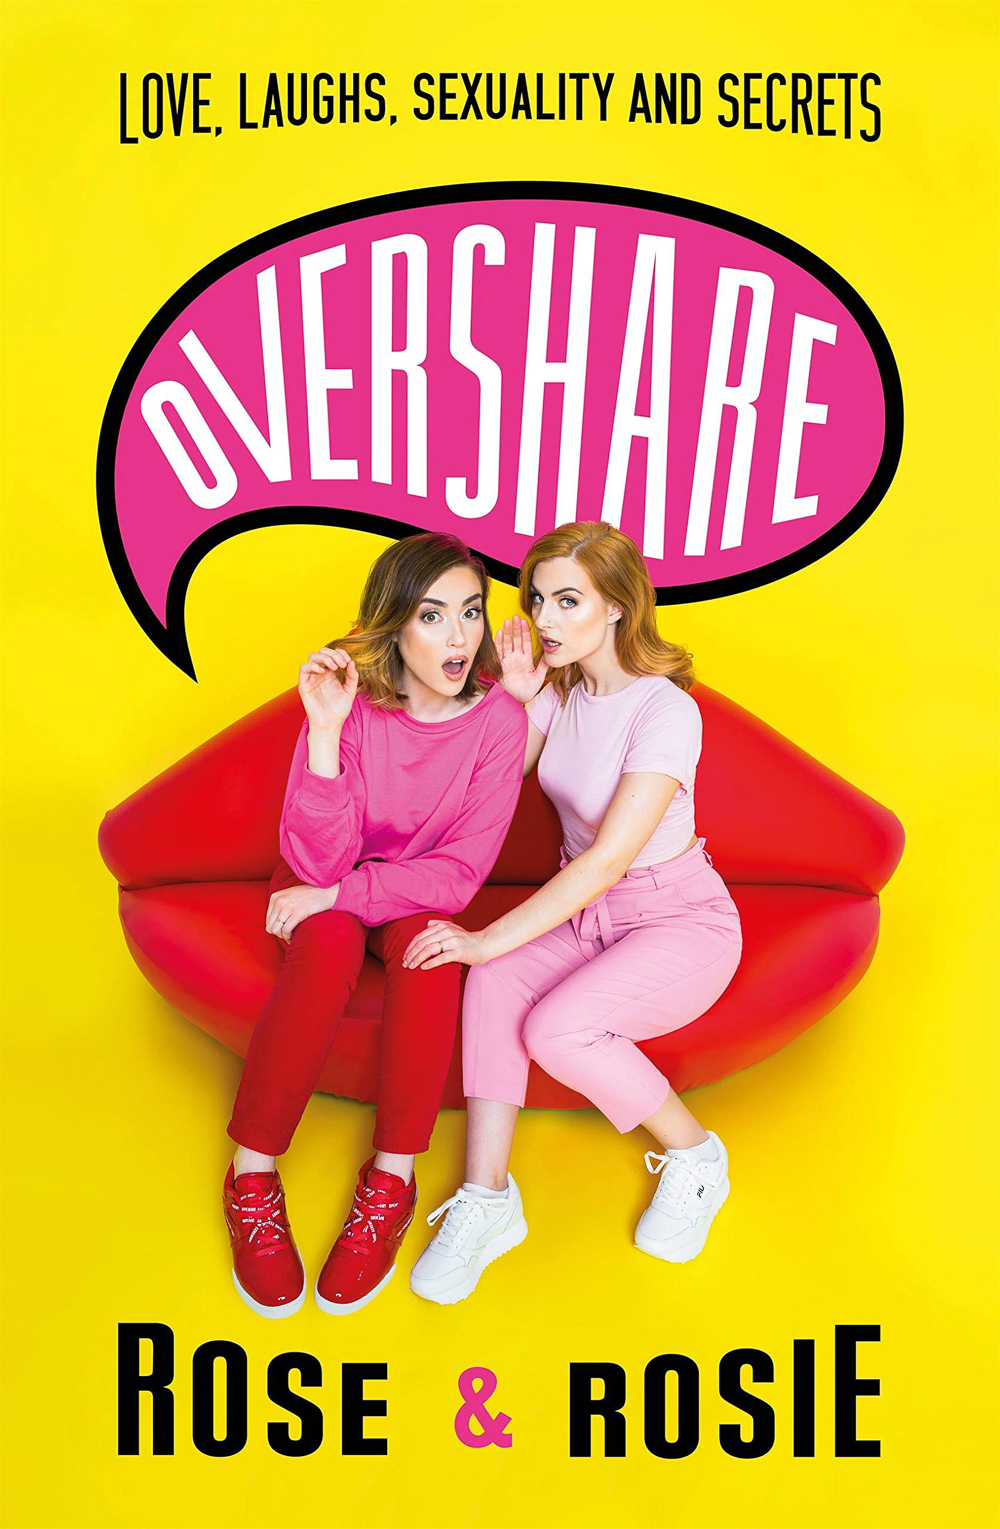 Overshare Love, Laughs, s exuality and Secrets by Rose Ellen Dix and Rosie Spaughton